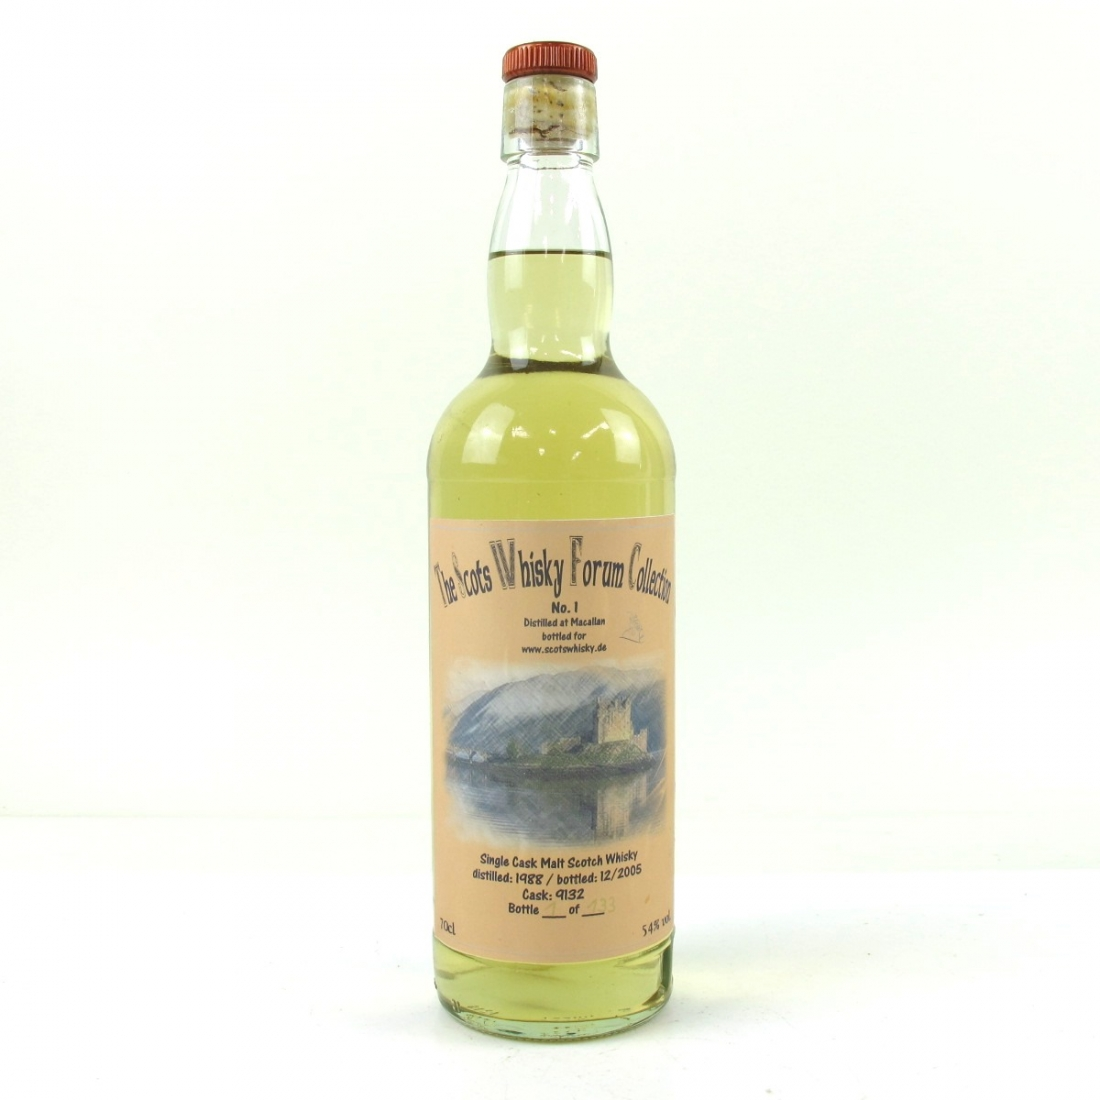 Macallan 1988 Scot Whisky Forum Collection 17 Year Old Single Cask